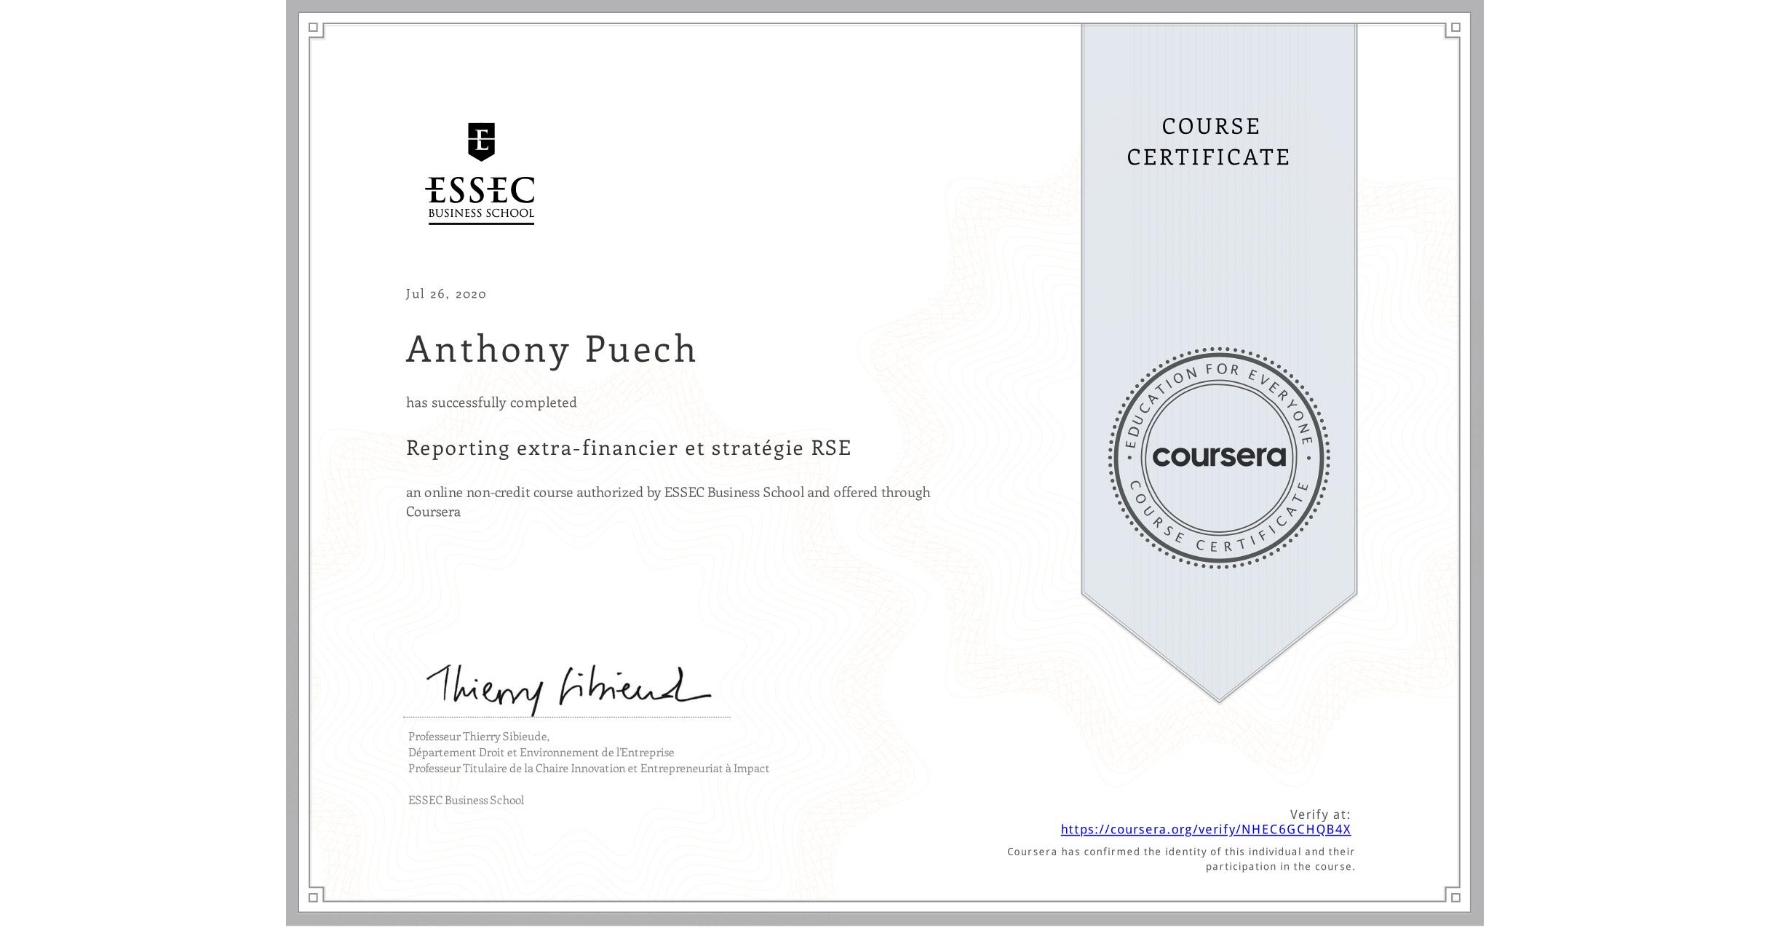 View certificate for Anthony Puech, Reporting extra-financier et stratégie RSE, an online non-credit course authorized by ESSEC Business School and offered through Coursera